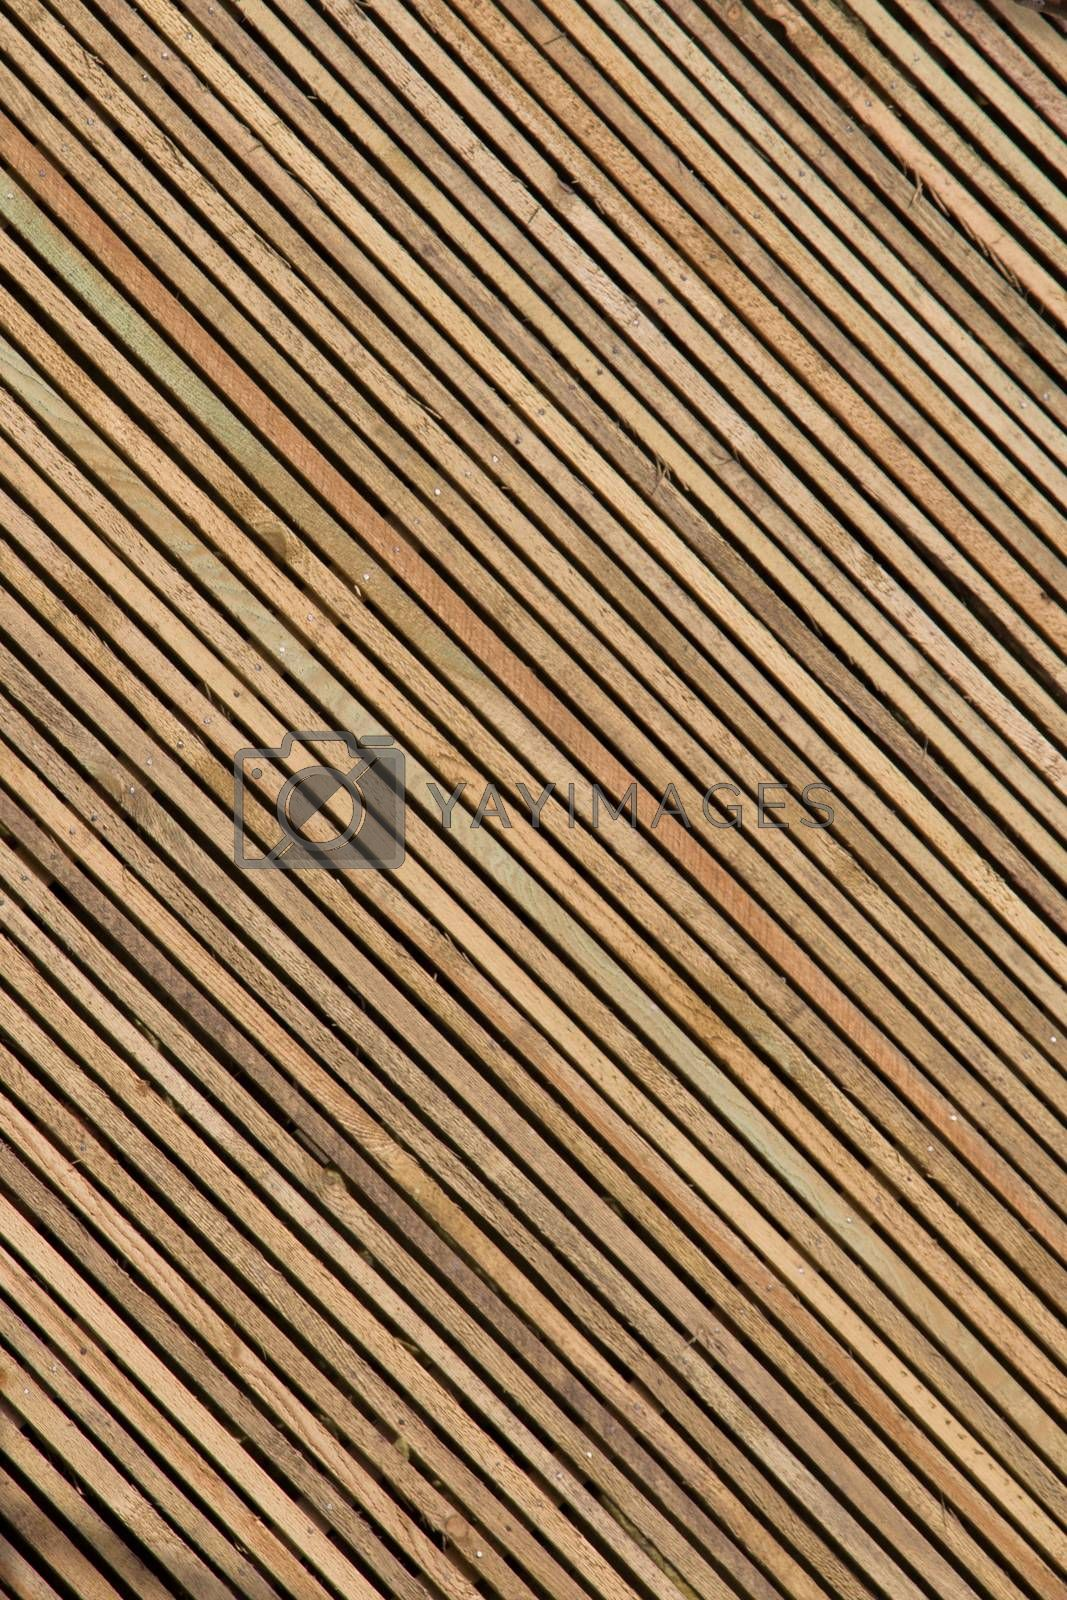 Wooden background with certain texture pattern by berkay